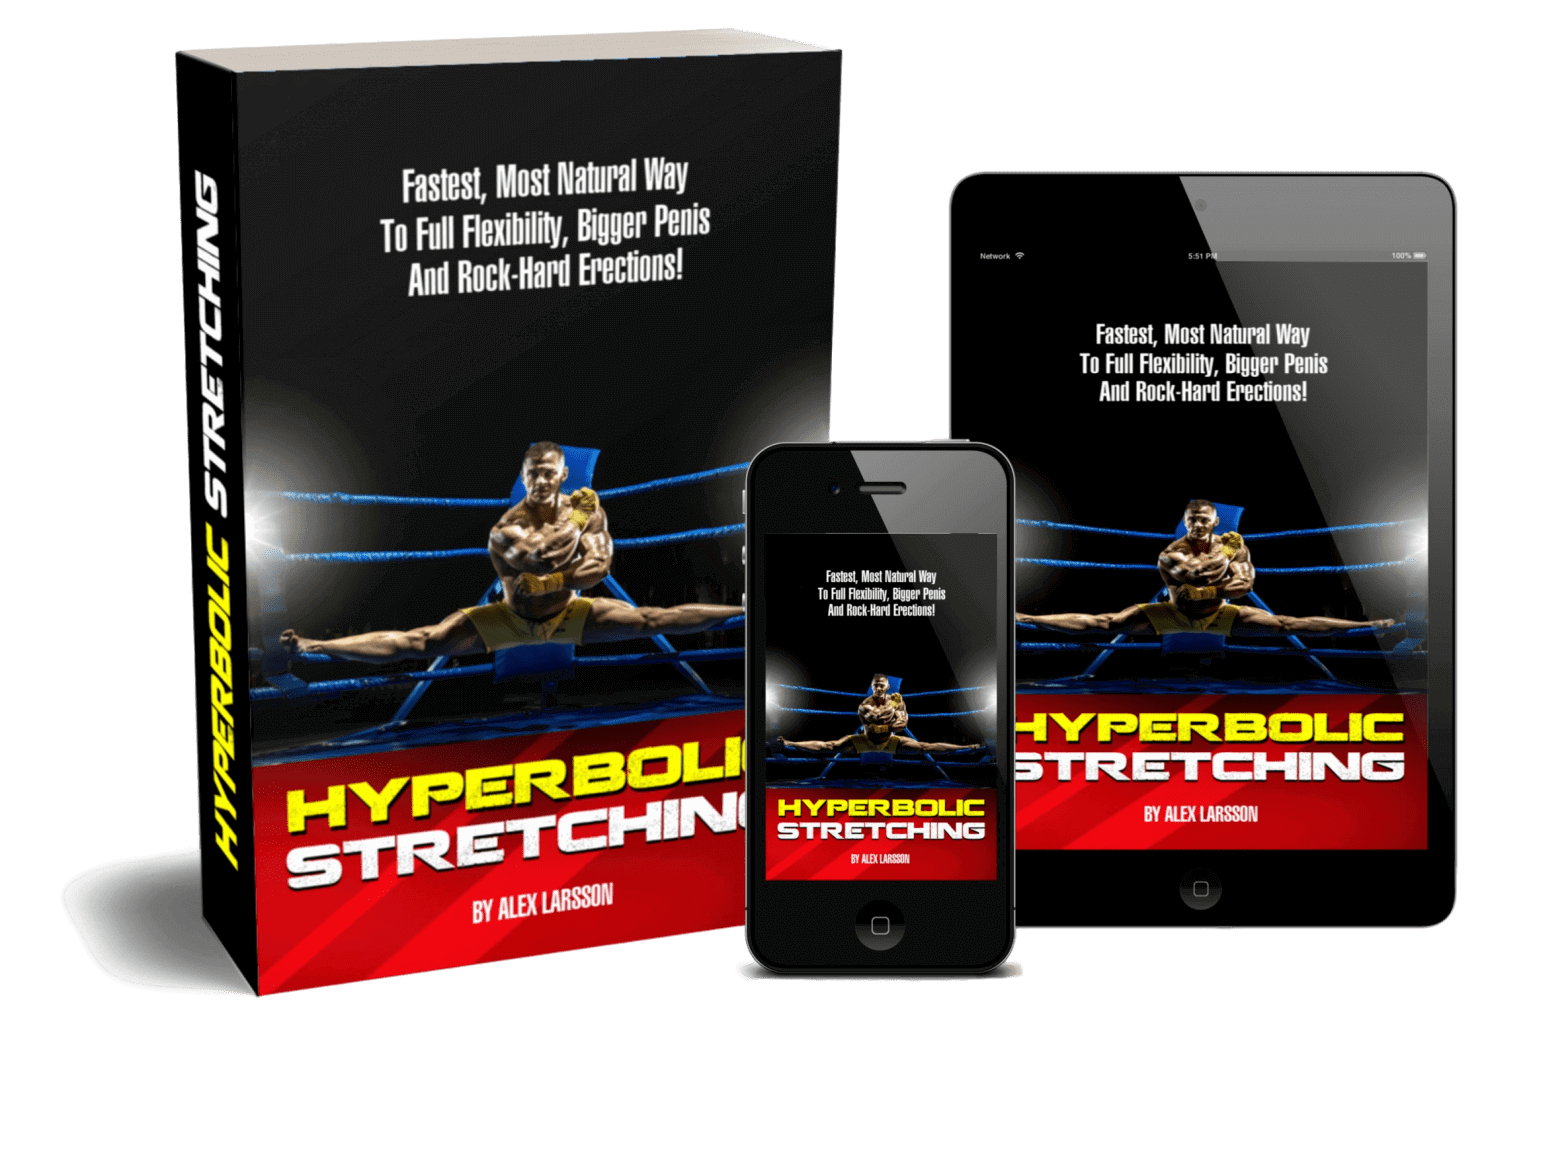 Hyperbolic Stretching program